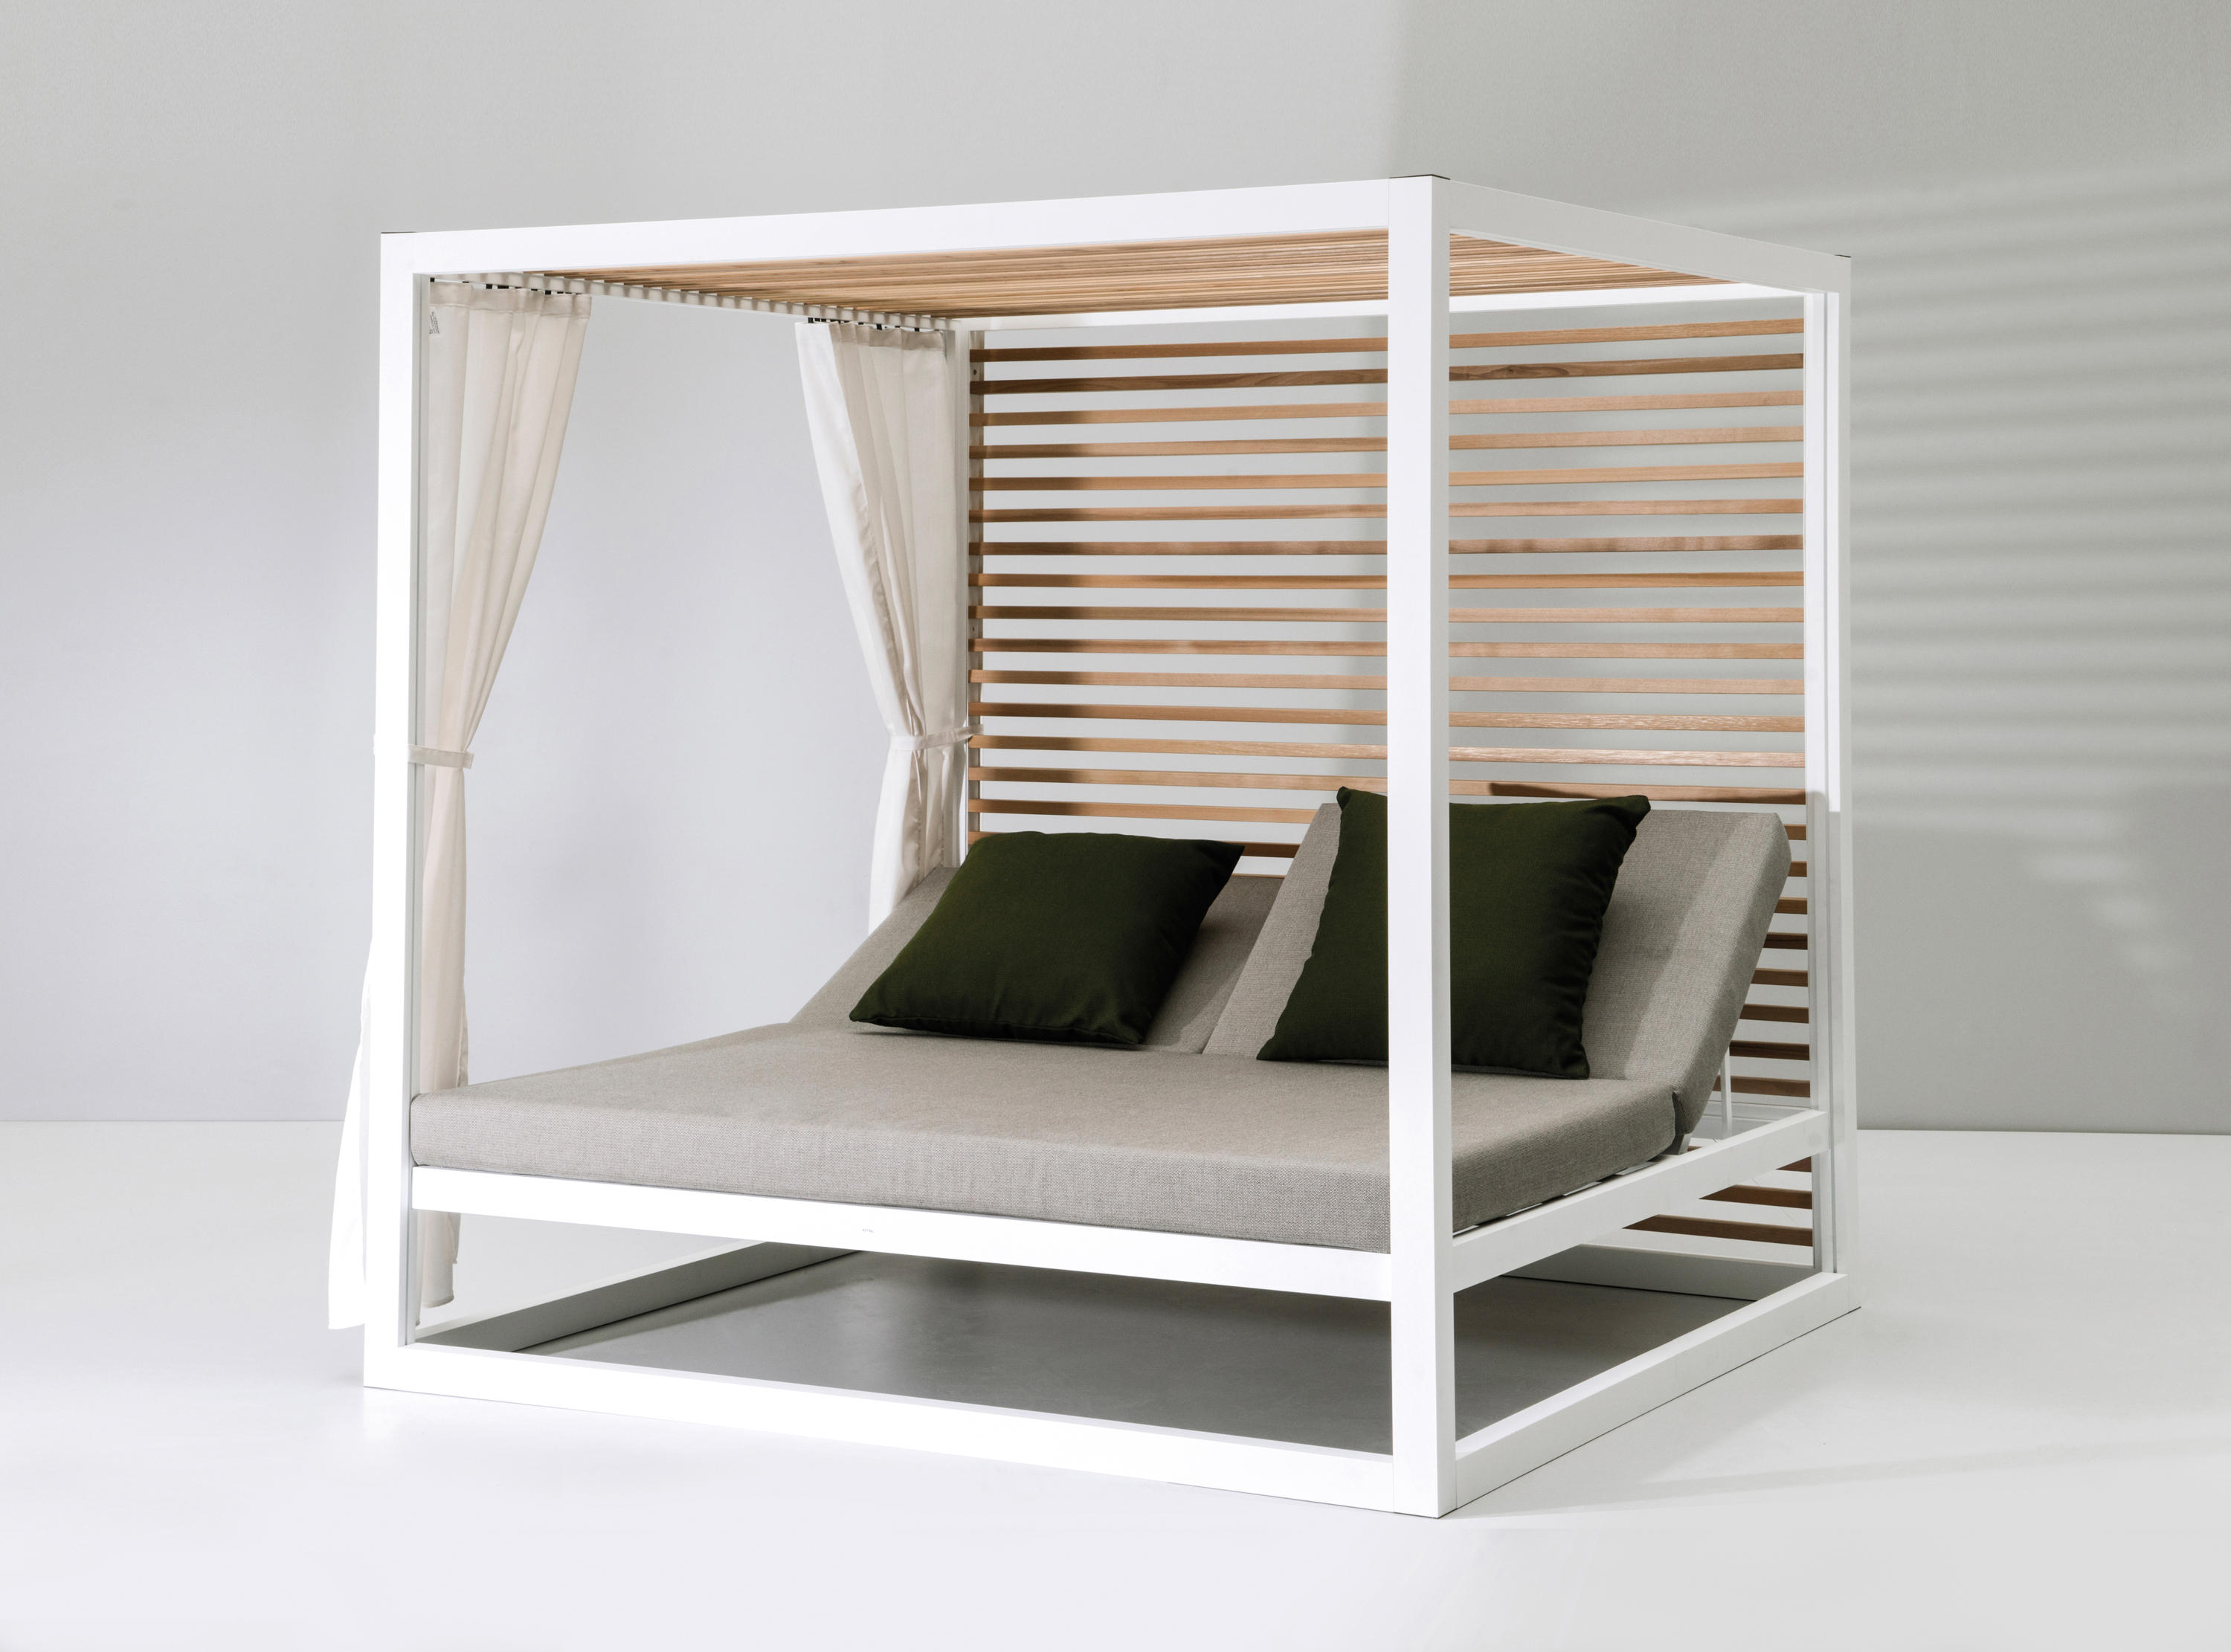 landscape daybed gazebo da giardino kettal architonic. Black Bedroom Furniture Sets. Home Design Ideas